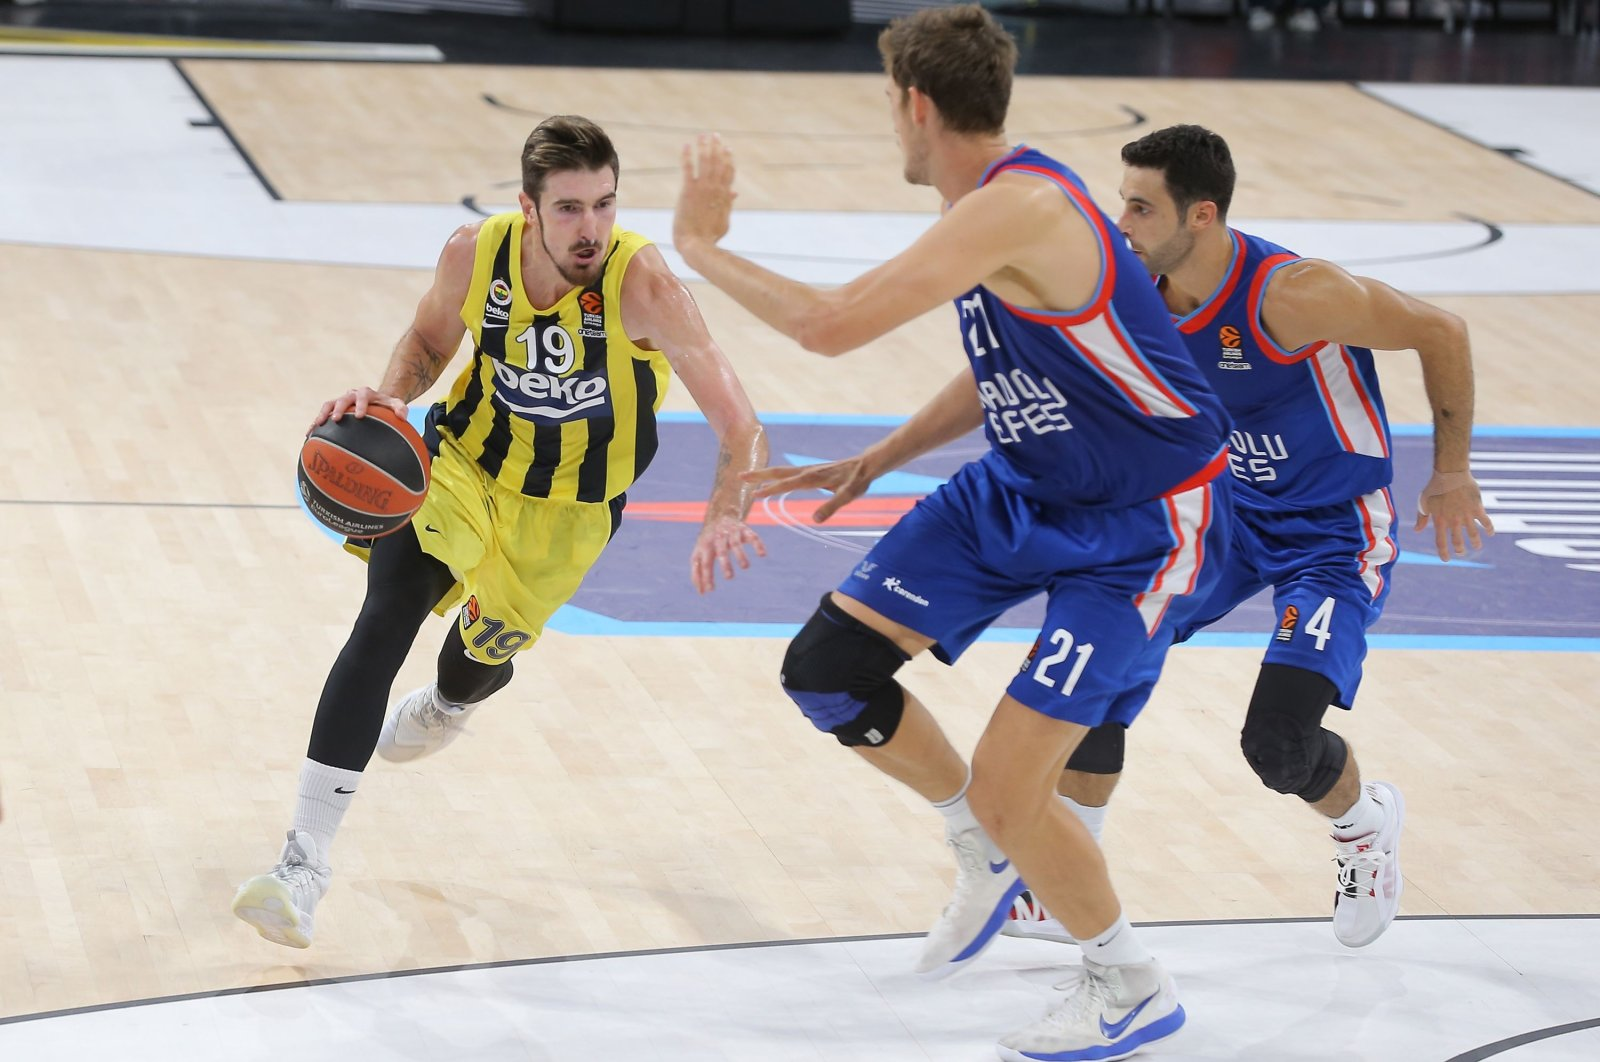 Fenerbahçe's Nando de Colo (L) tries to dribble past Anadolu Efes' Tibor Pleiss (C) and Doğuş Balbay during a EuroLeague basketball match, in Istanbul, Turkey, Oct. 8, 2020. (IHA Photo)